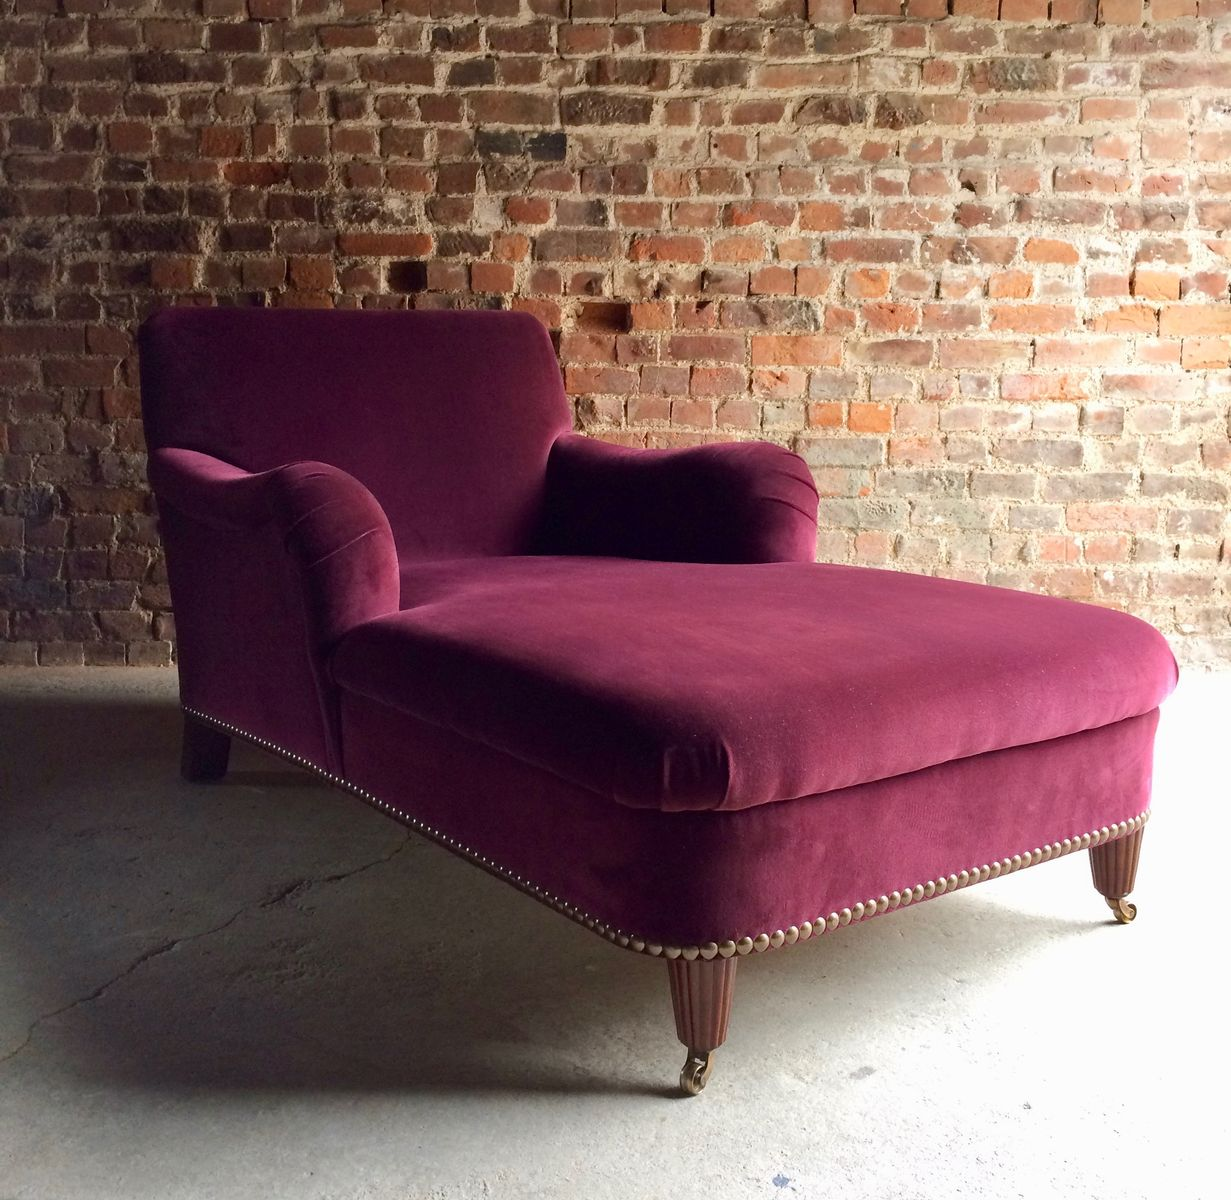 Chaise longue by ralph lauren 2007 for sale at pamono for Chaise longue for sale